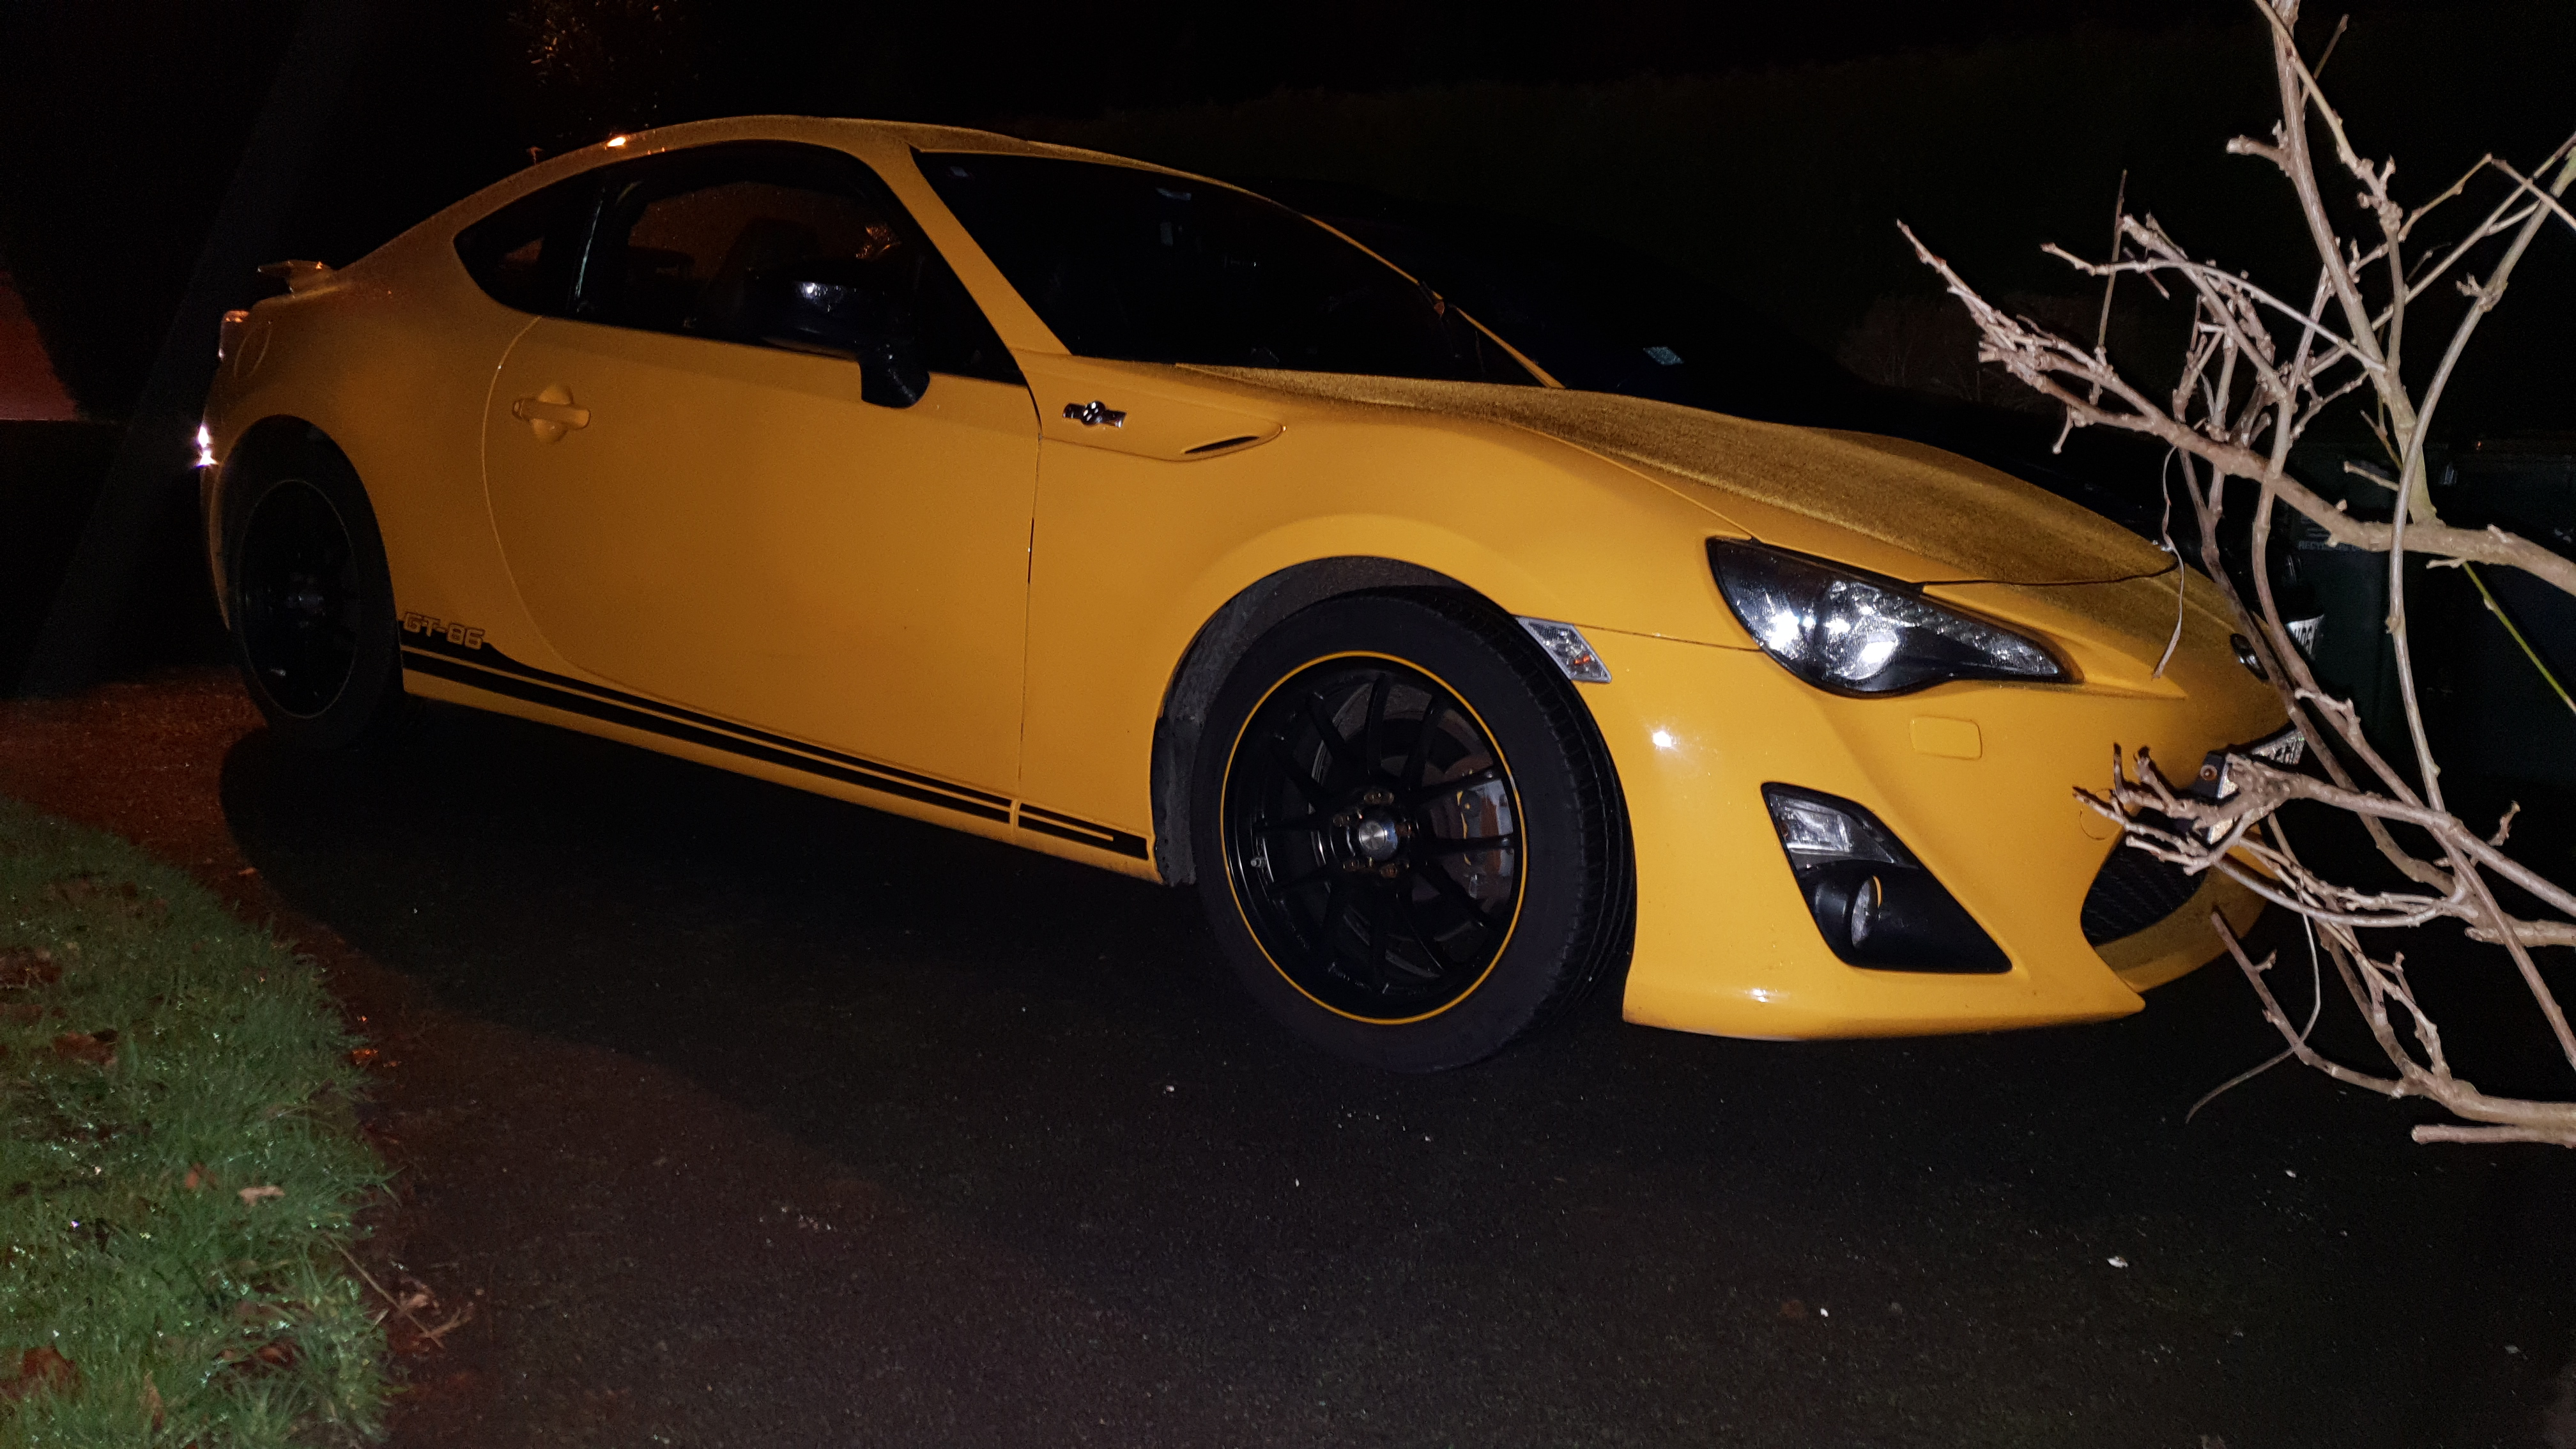 60K miles with a GT86